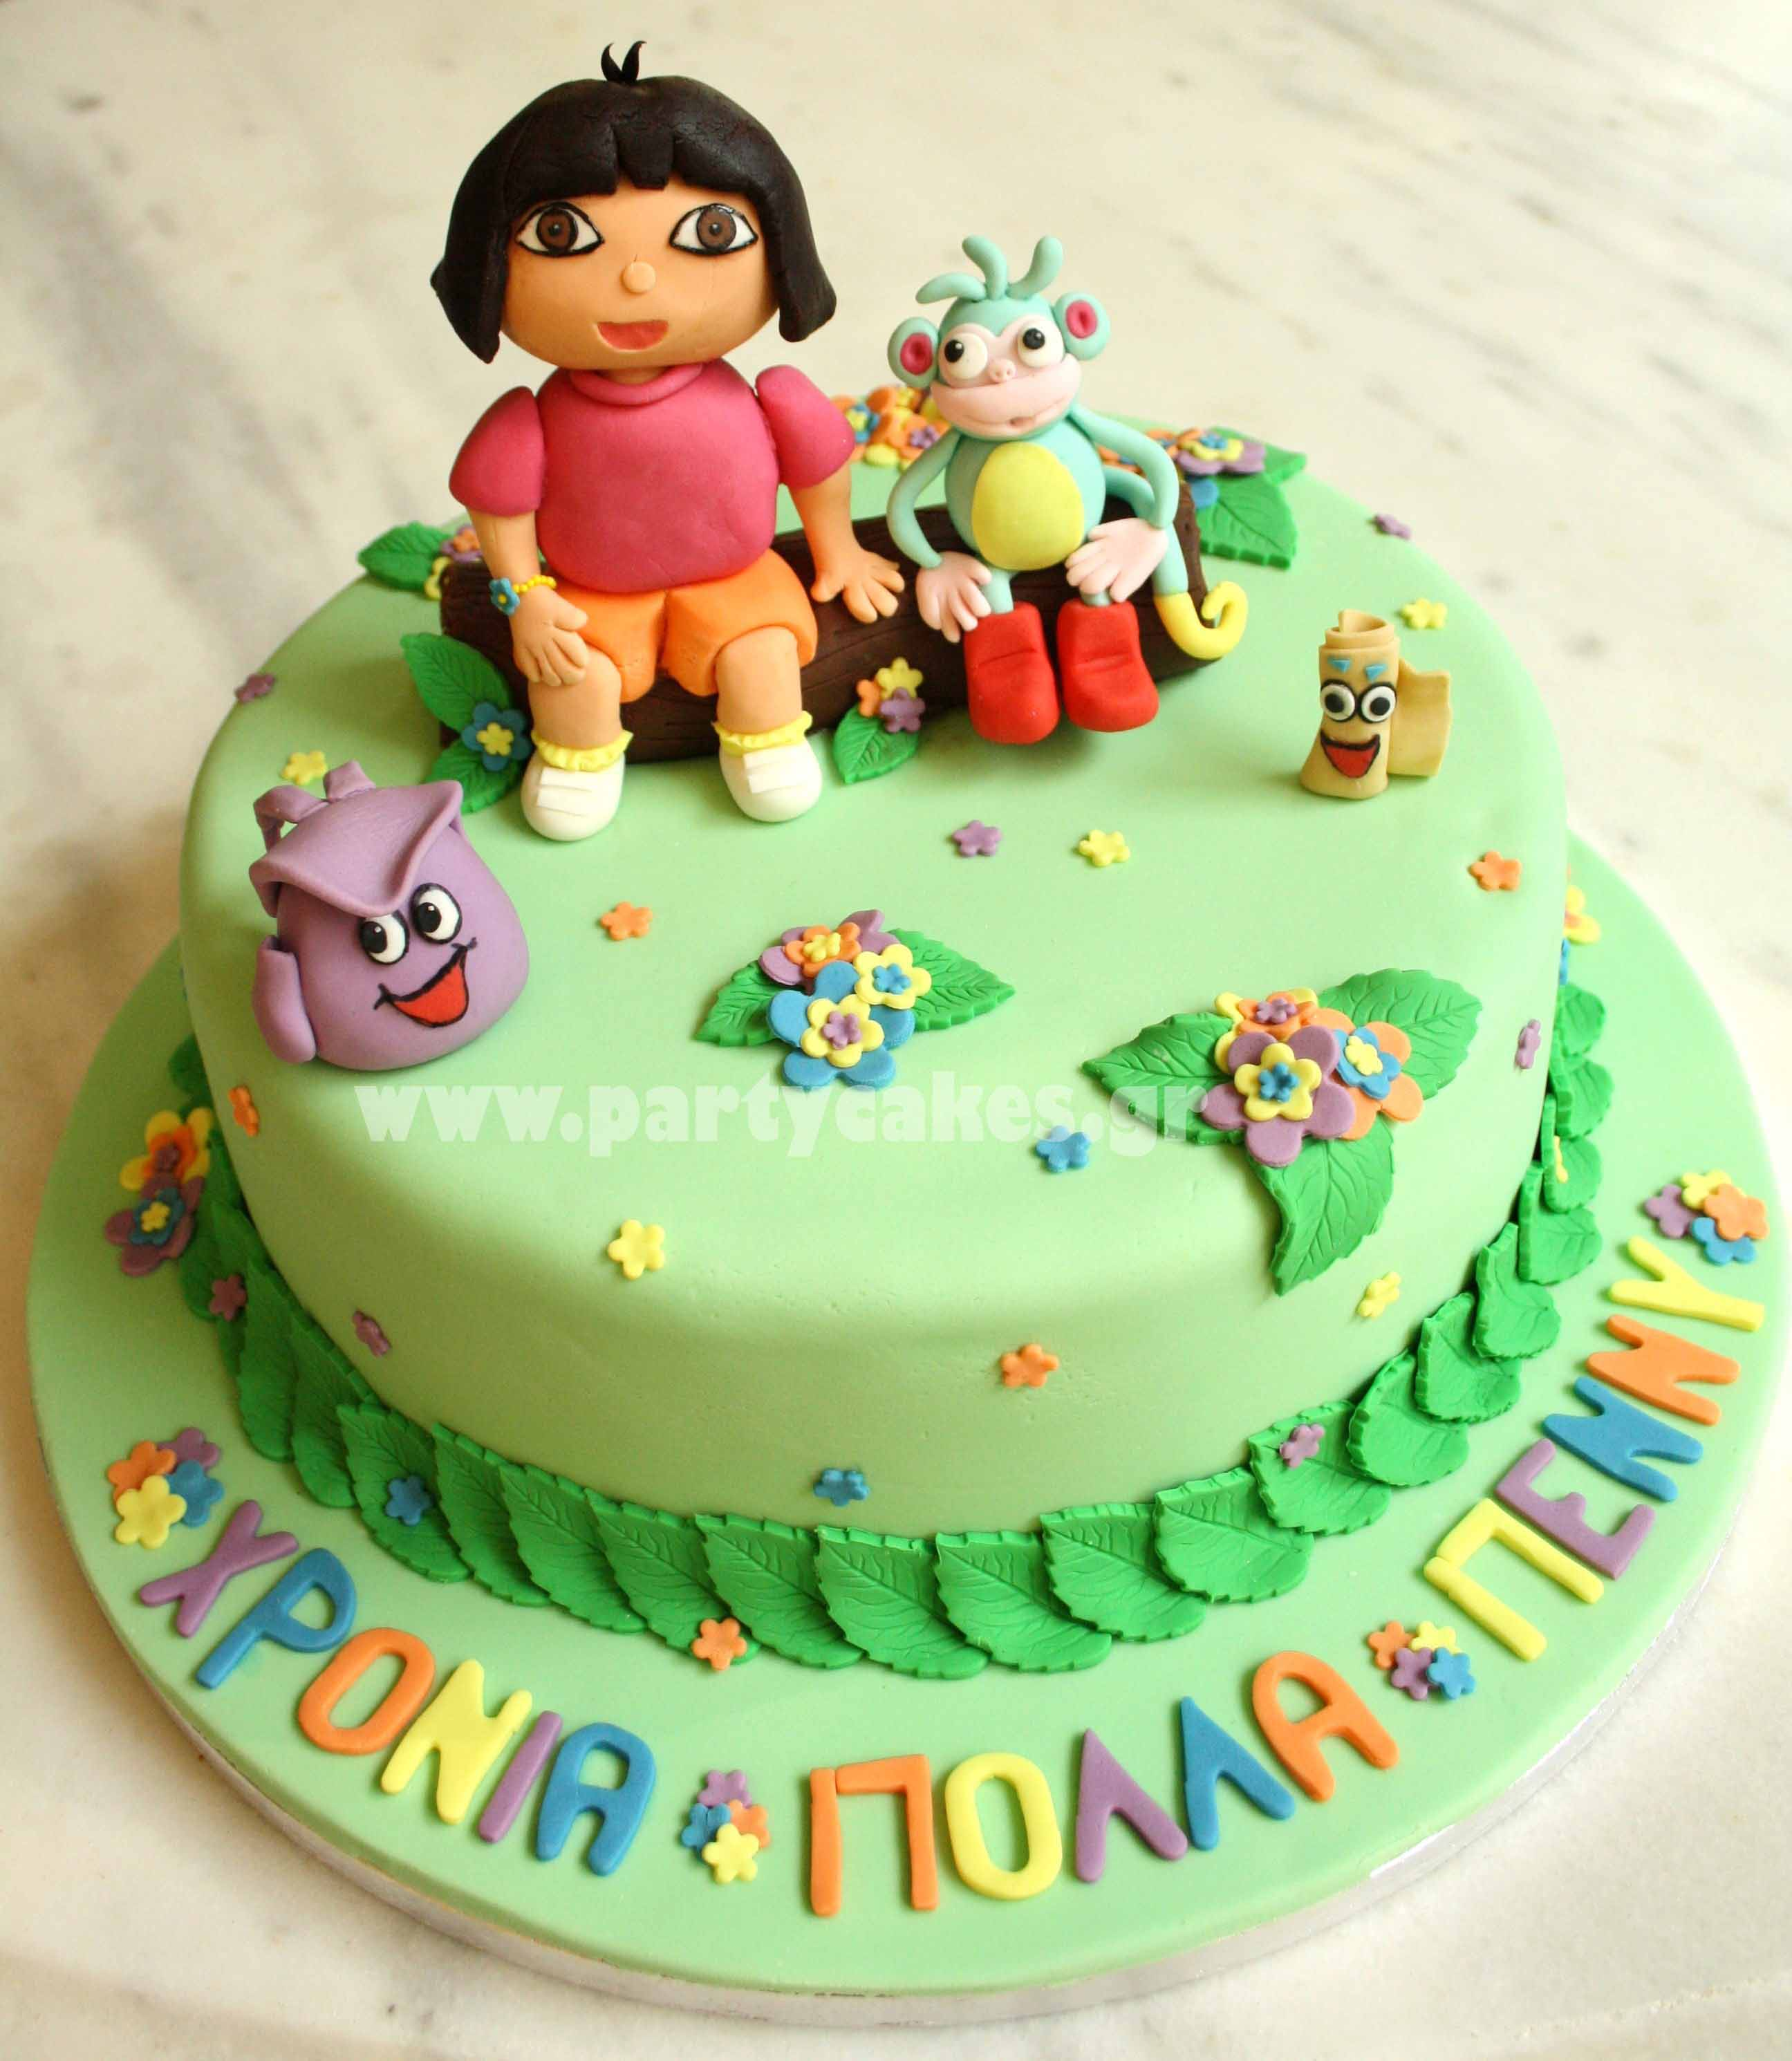 Dora+The+Explorer+1+copy.jpg